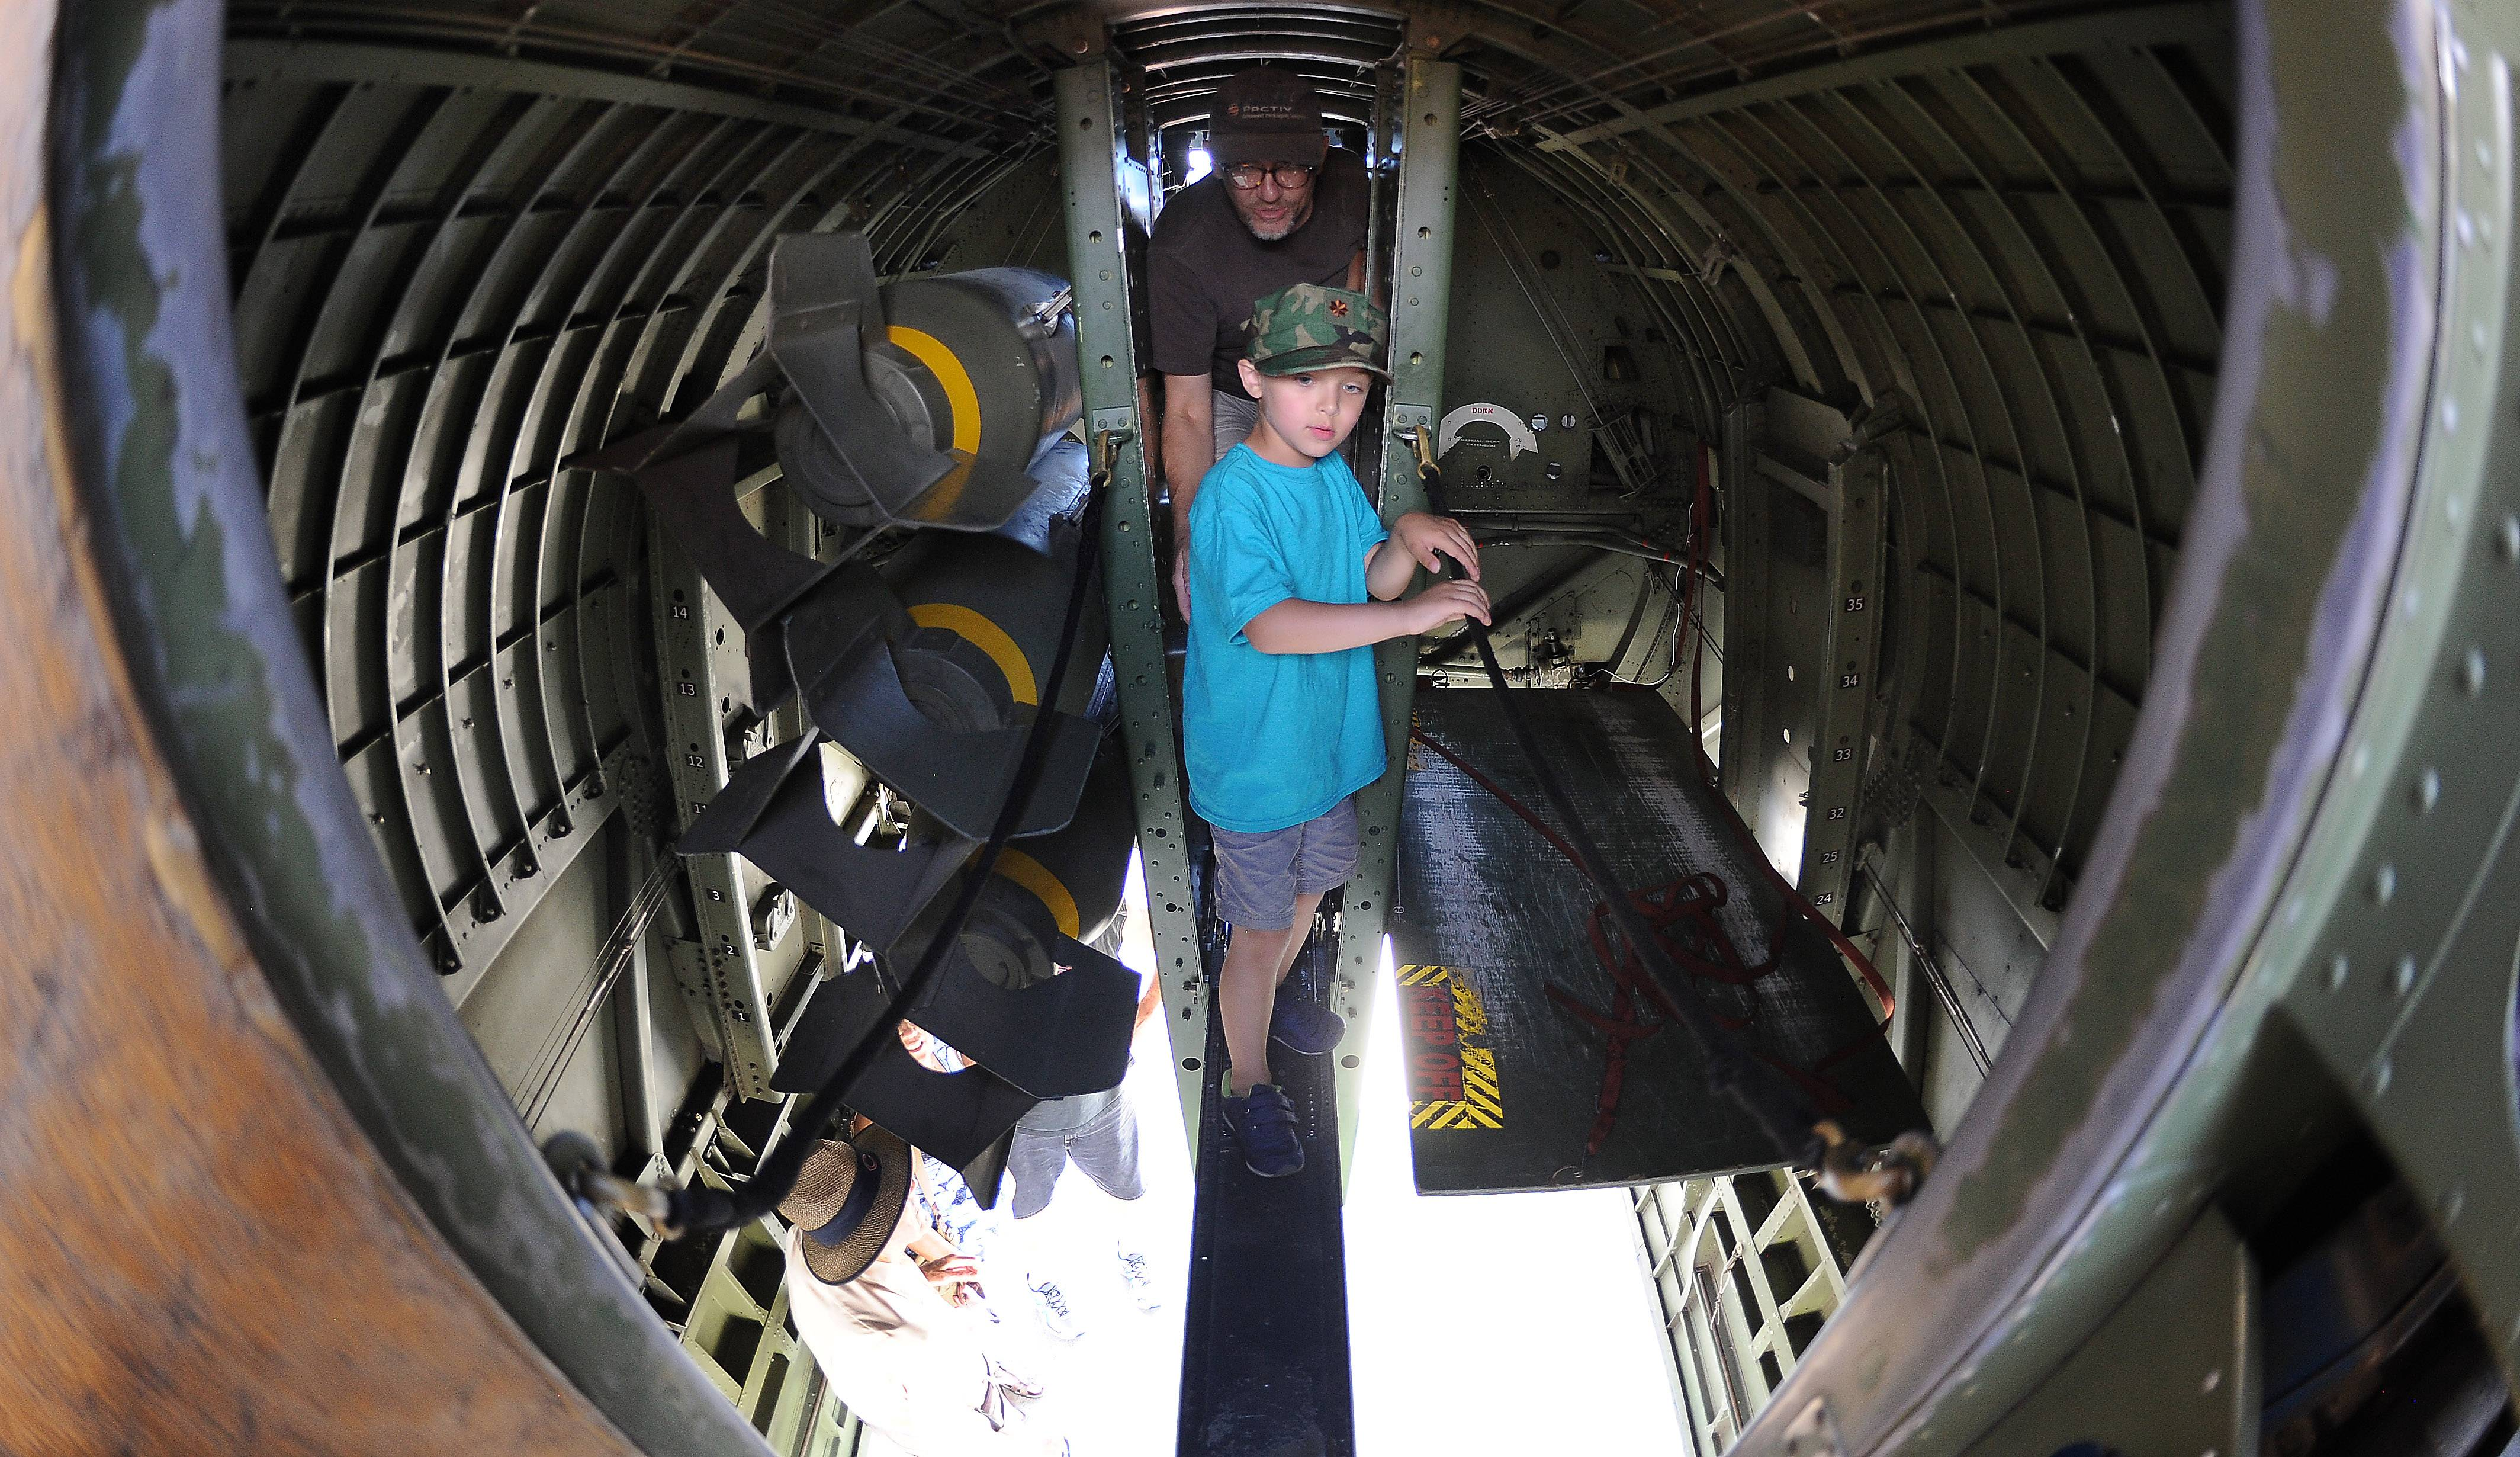 Seeing a vintage Boeing B-17 Flying Fortress was a thrill for Nathaniel Matusik, 5, and his dad, Matthew, of Morton Grove who squeezed through the bomb compartment Monday at Chicago Executive Airport in Wheeling.